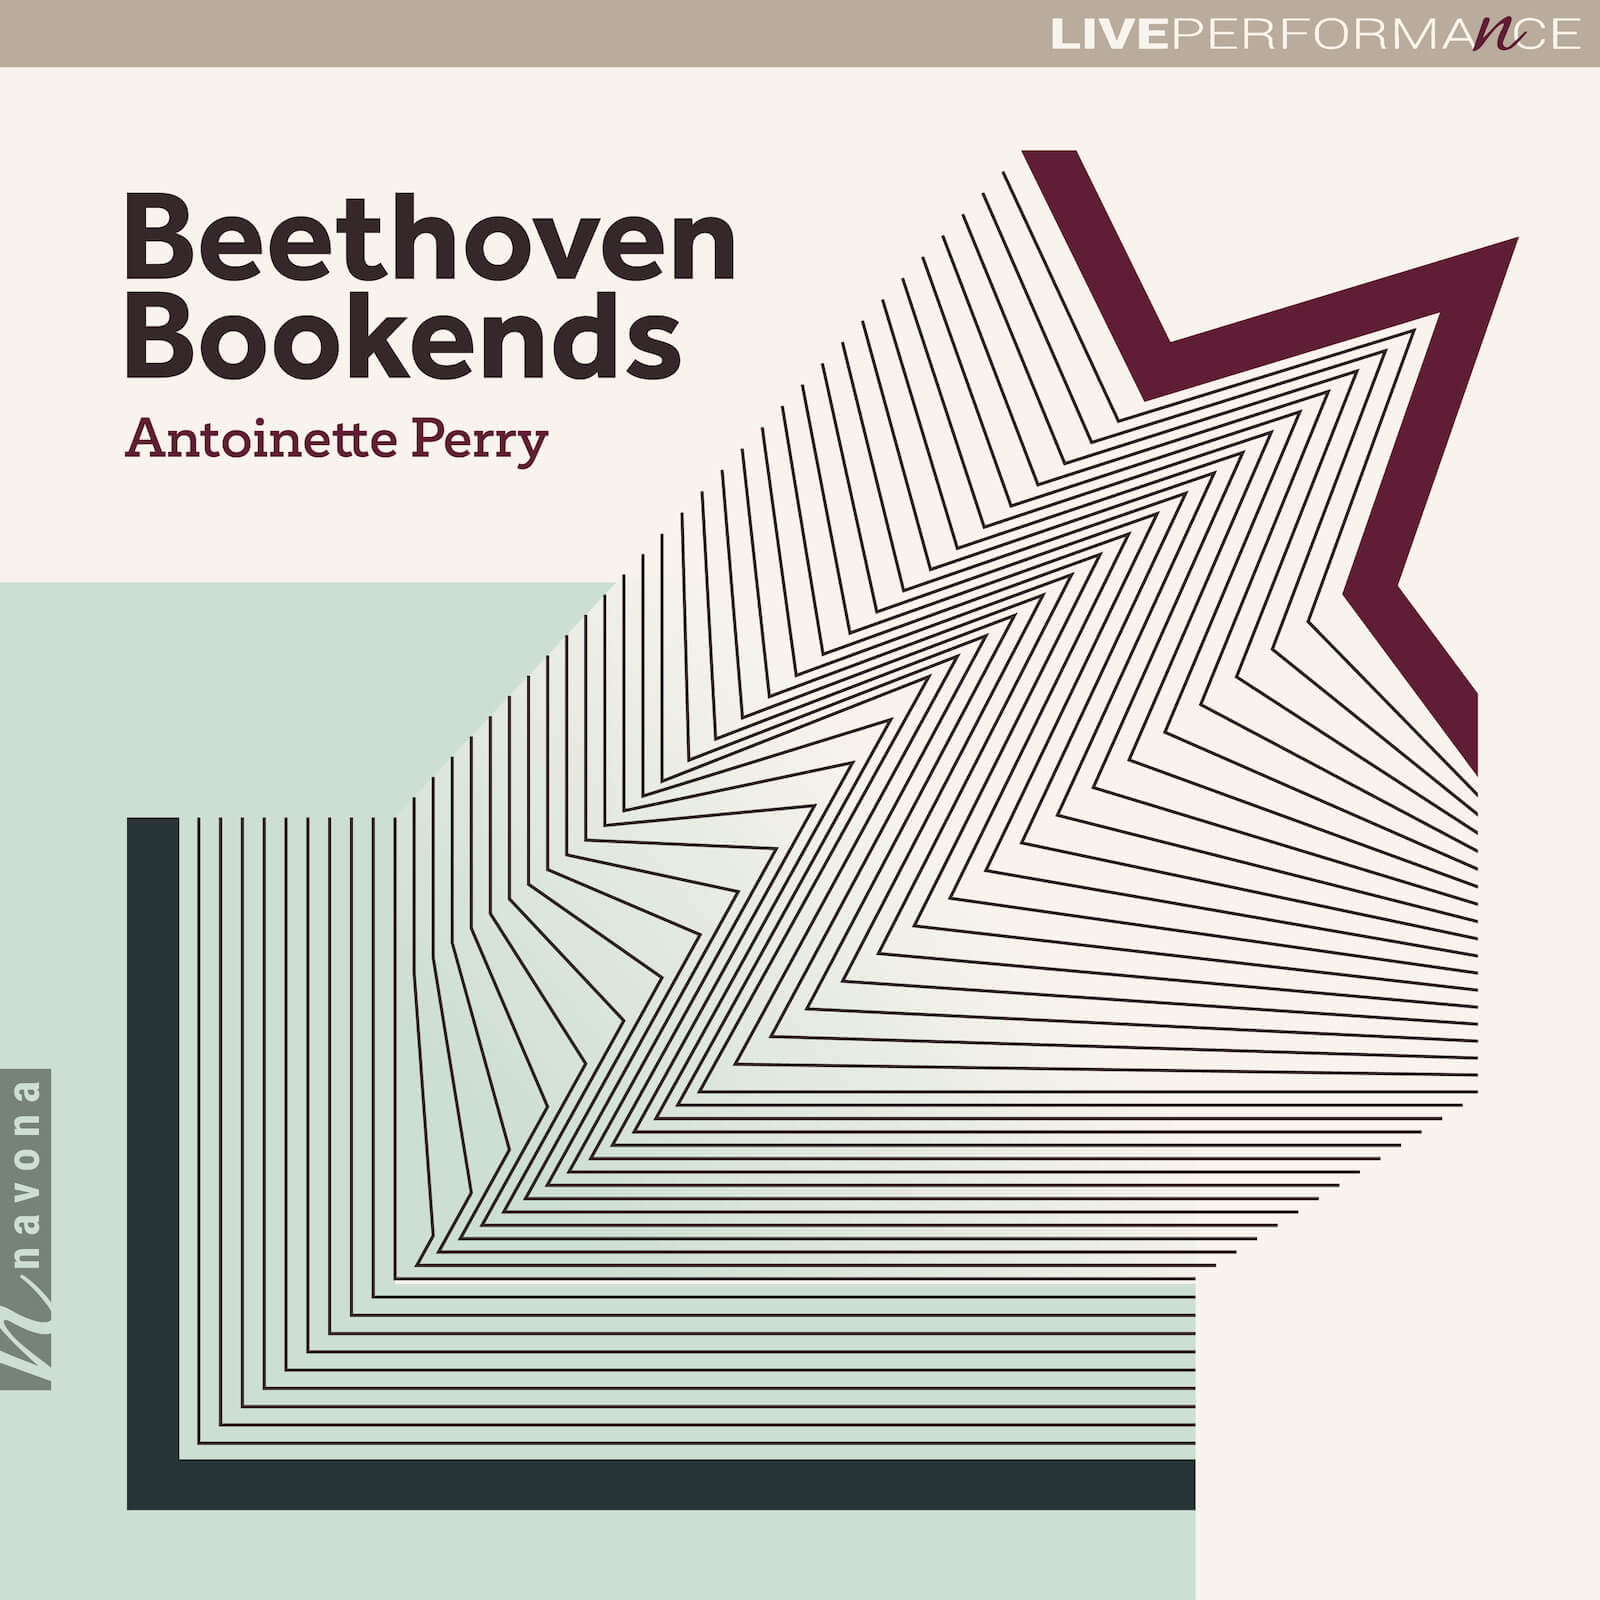 BEETHOVEN BOOKENDS - Album Cover